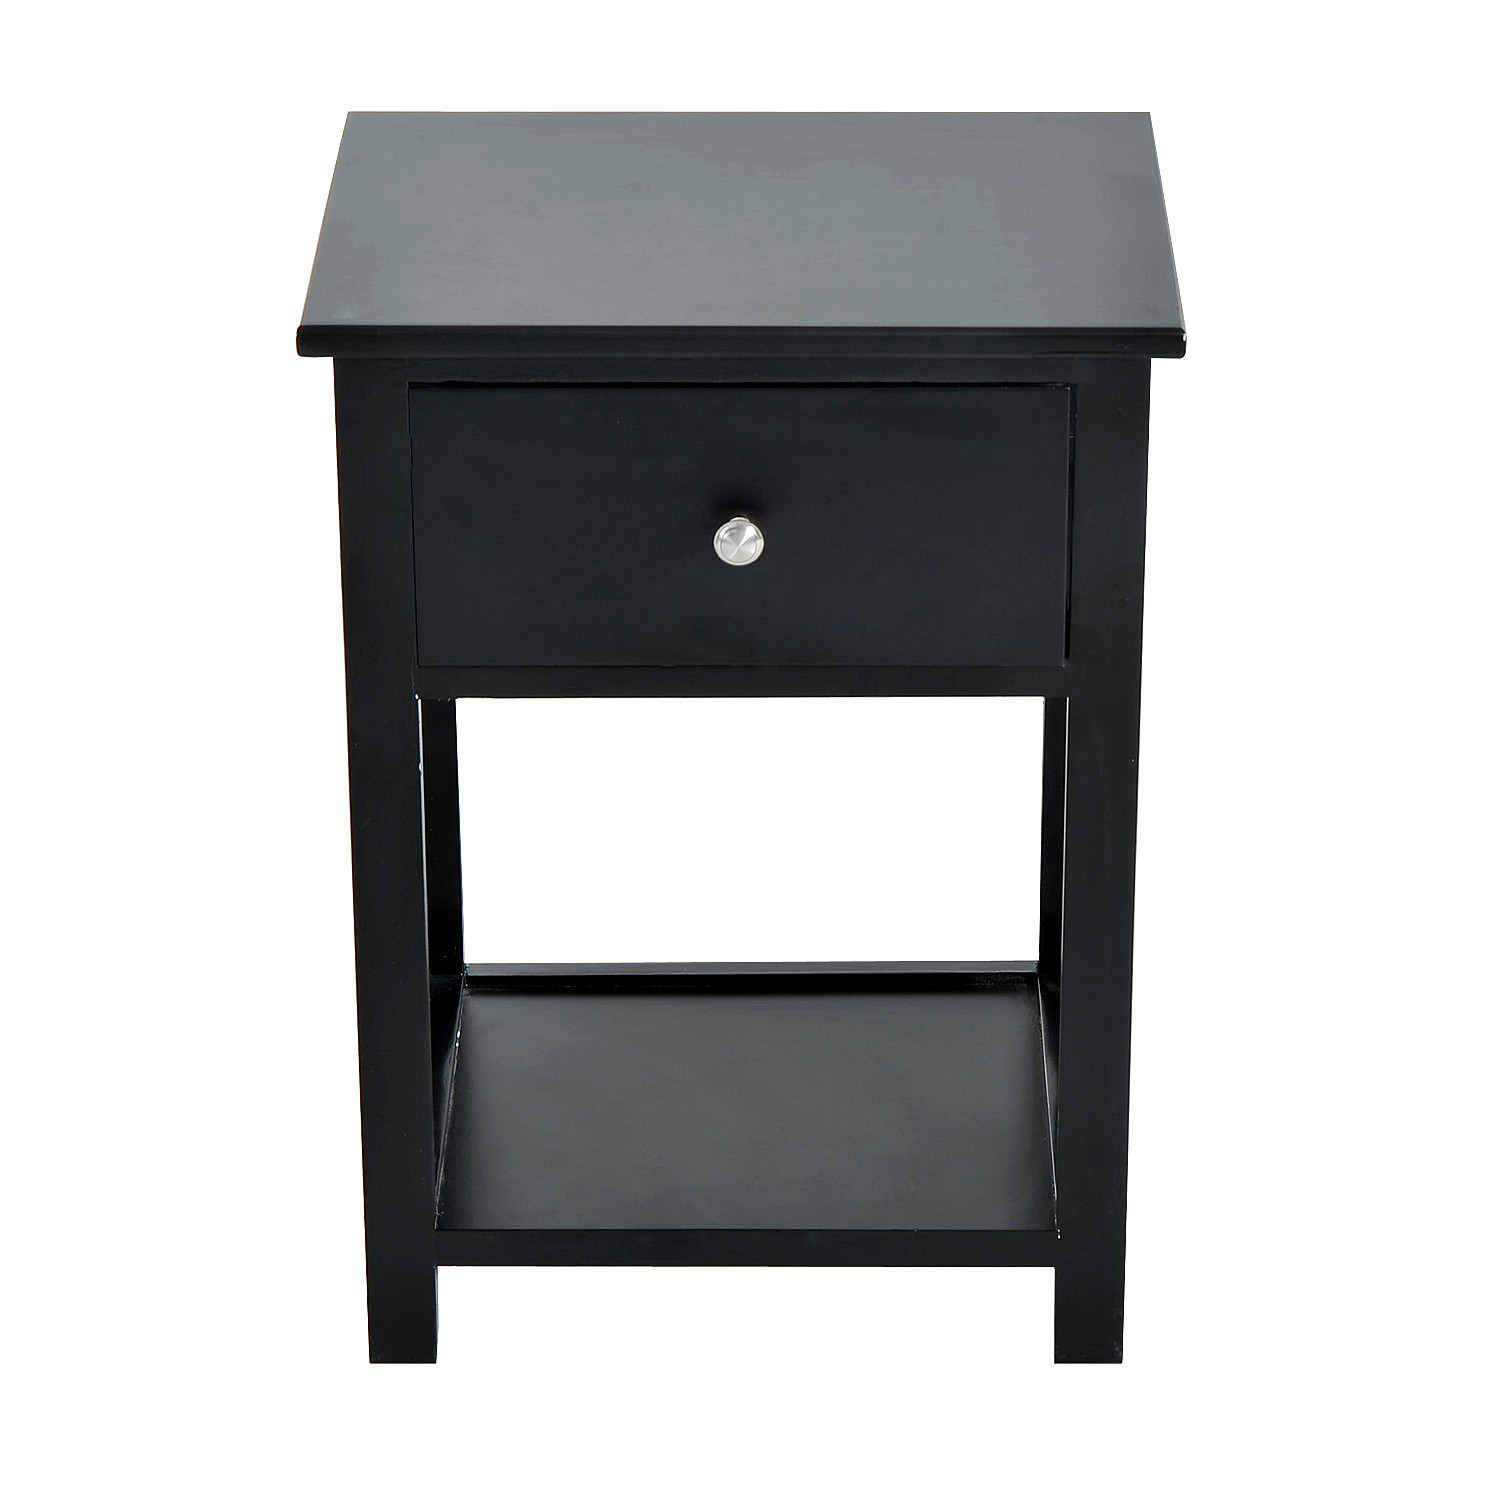 homcom black side wood end table nightstand drawer thin accent home goods tables large wall clocks small white for nursery inch console grey clock big lots daybed ikea coffee and